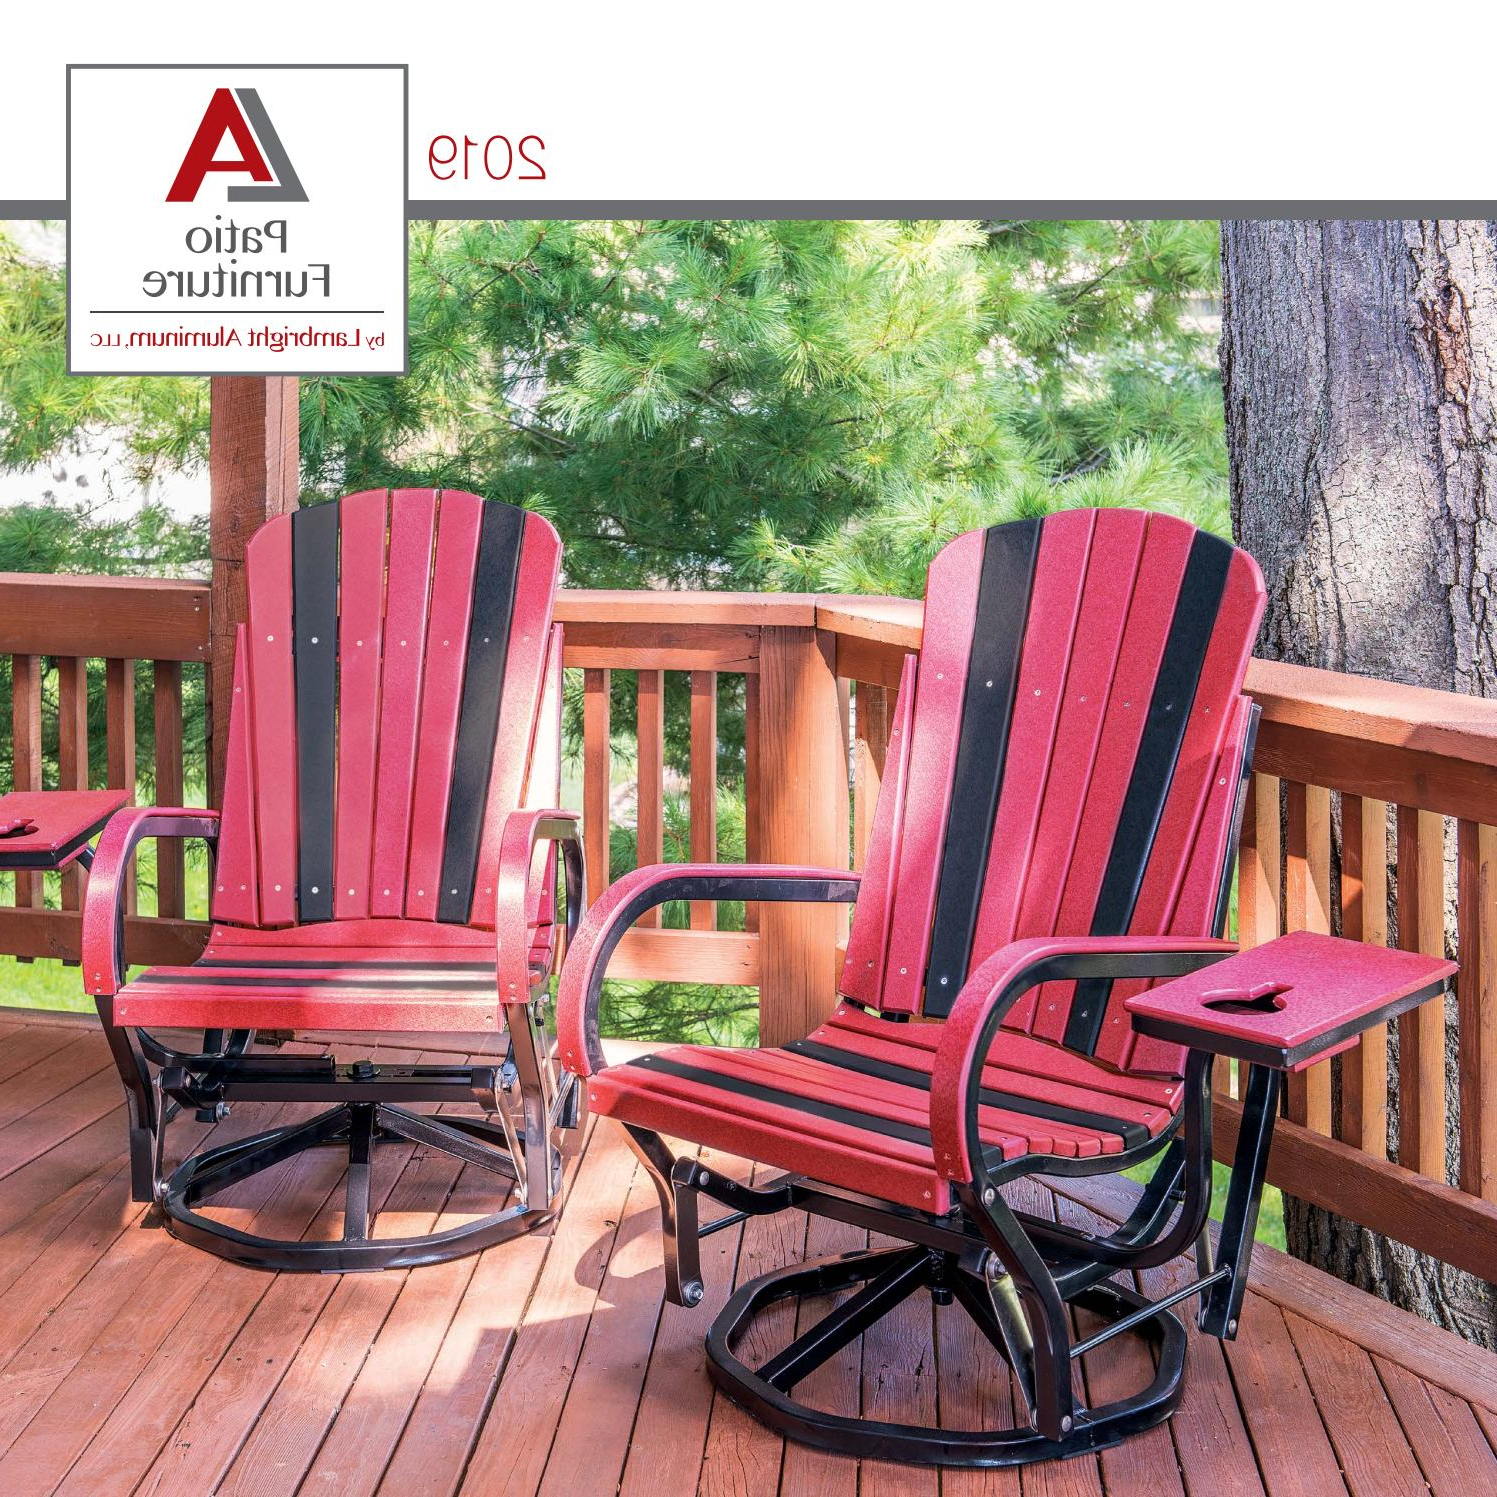 La Patio Furnitureonlineamishfurniture – Issuu With Best And Newest Aluminum Outdoor Double Glider Benches (View 18 of 30)